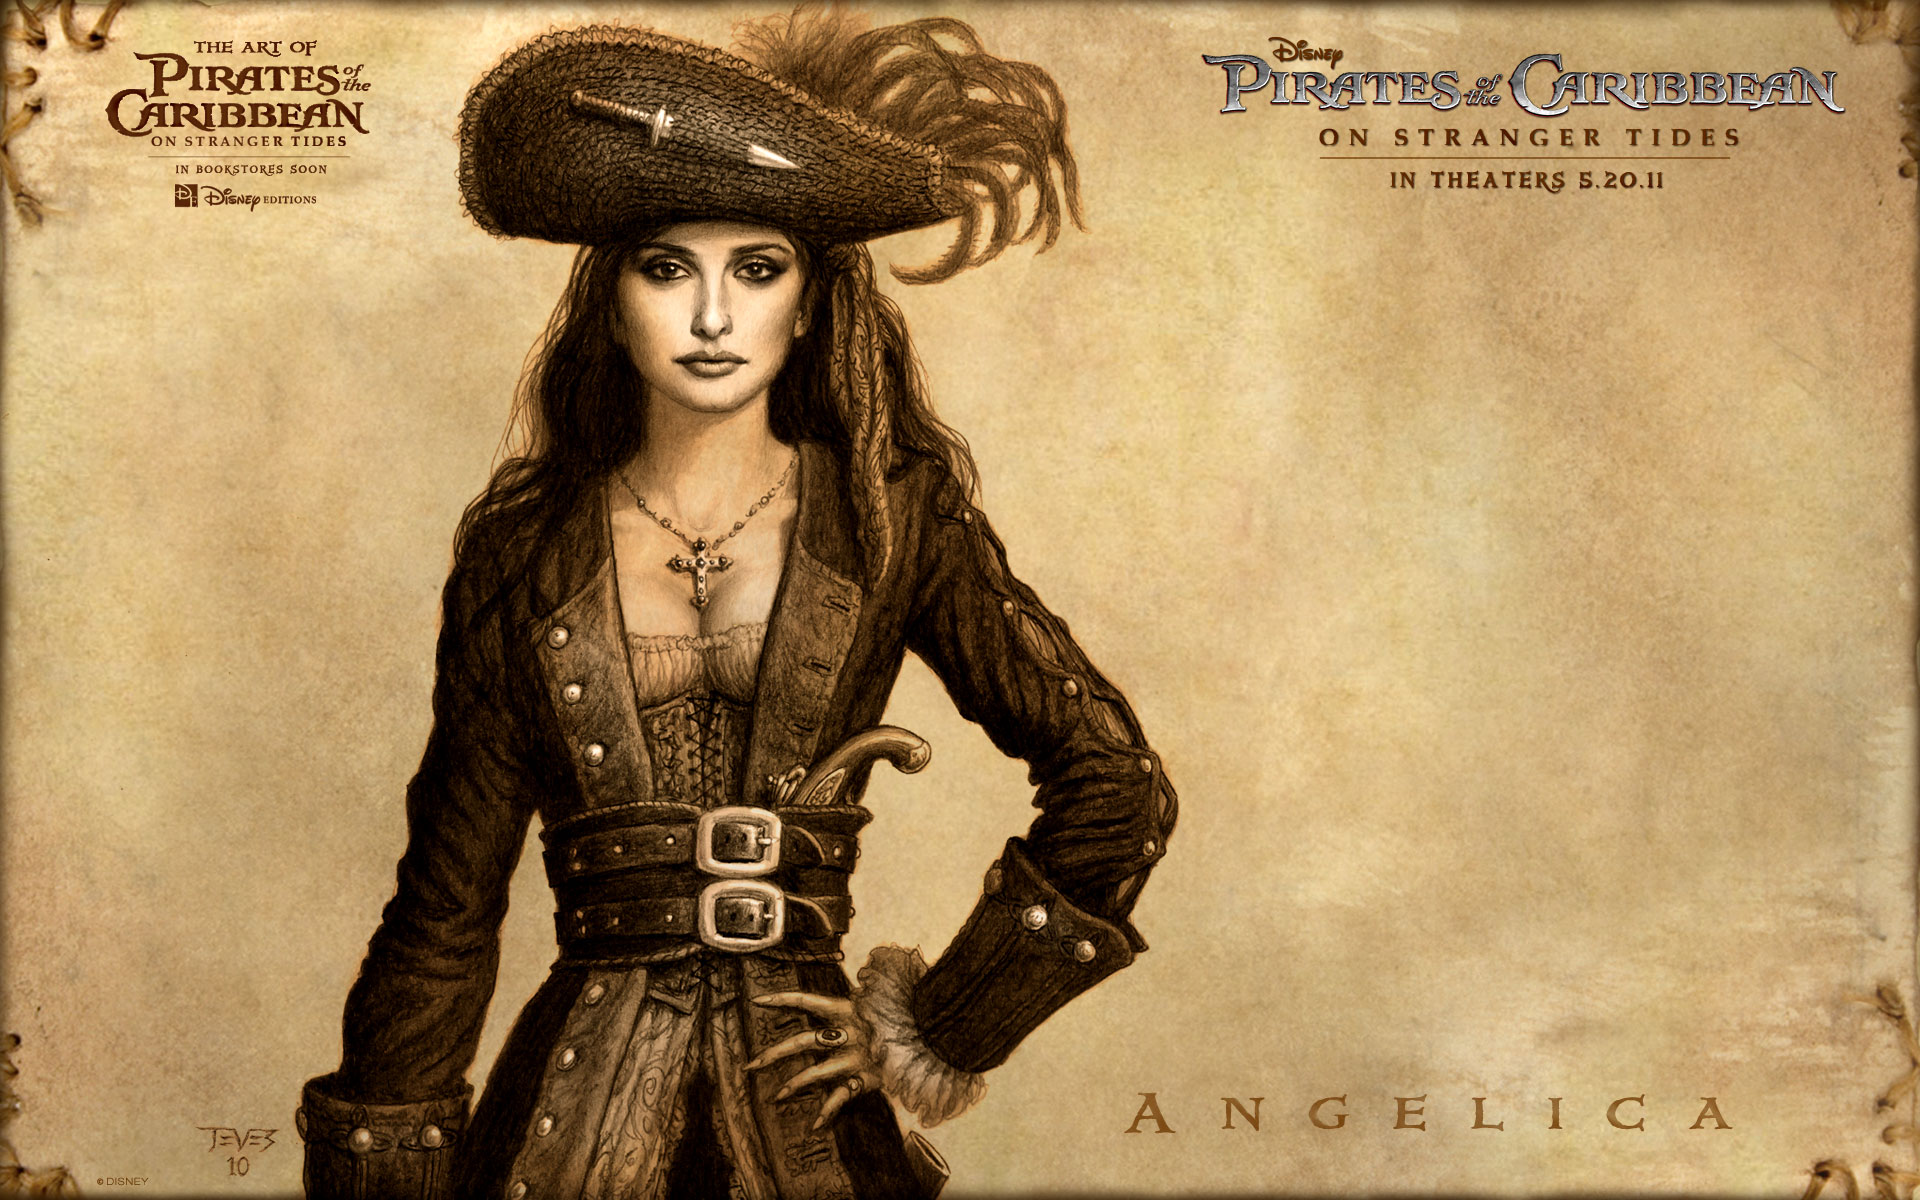 Download wallpaper pirates of the caribbean on stranger tides the